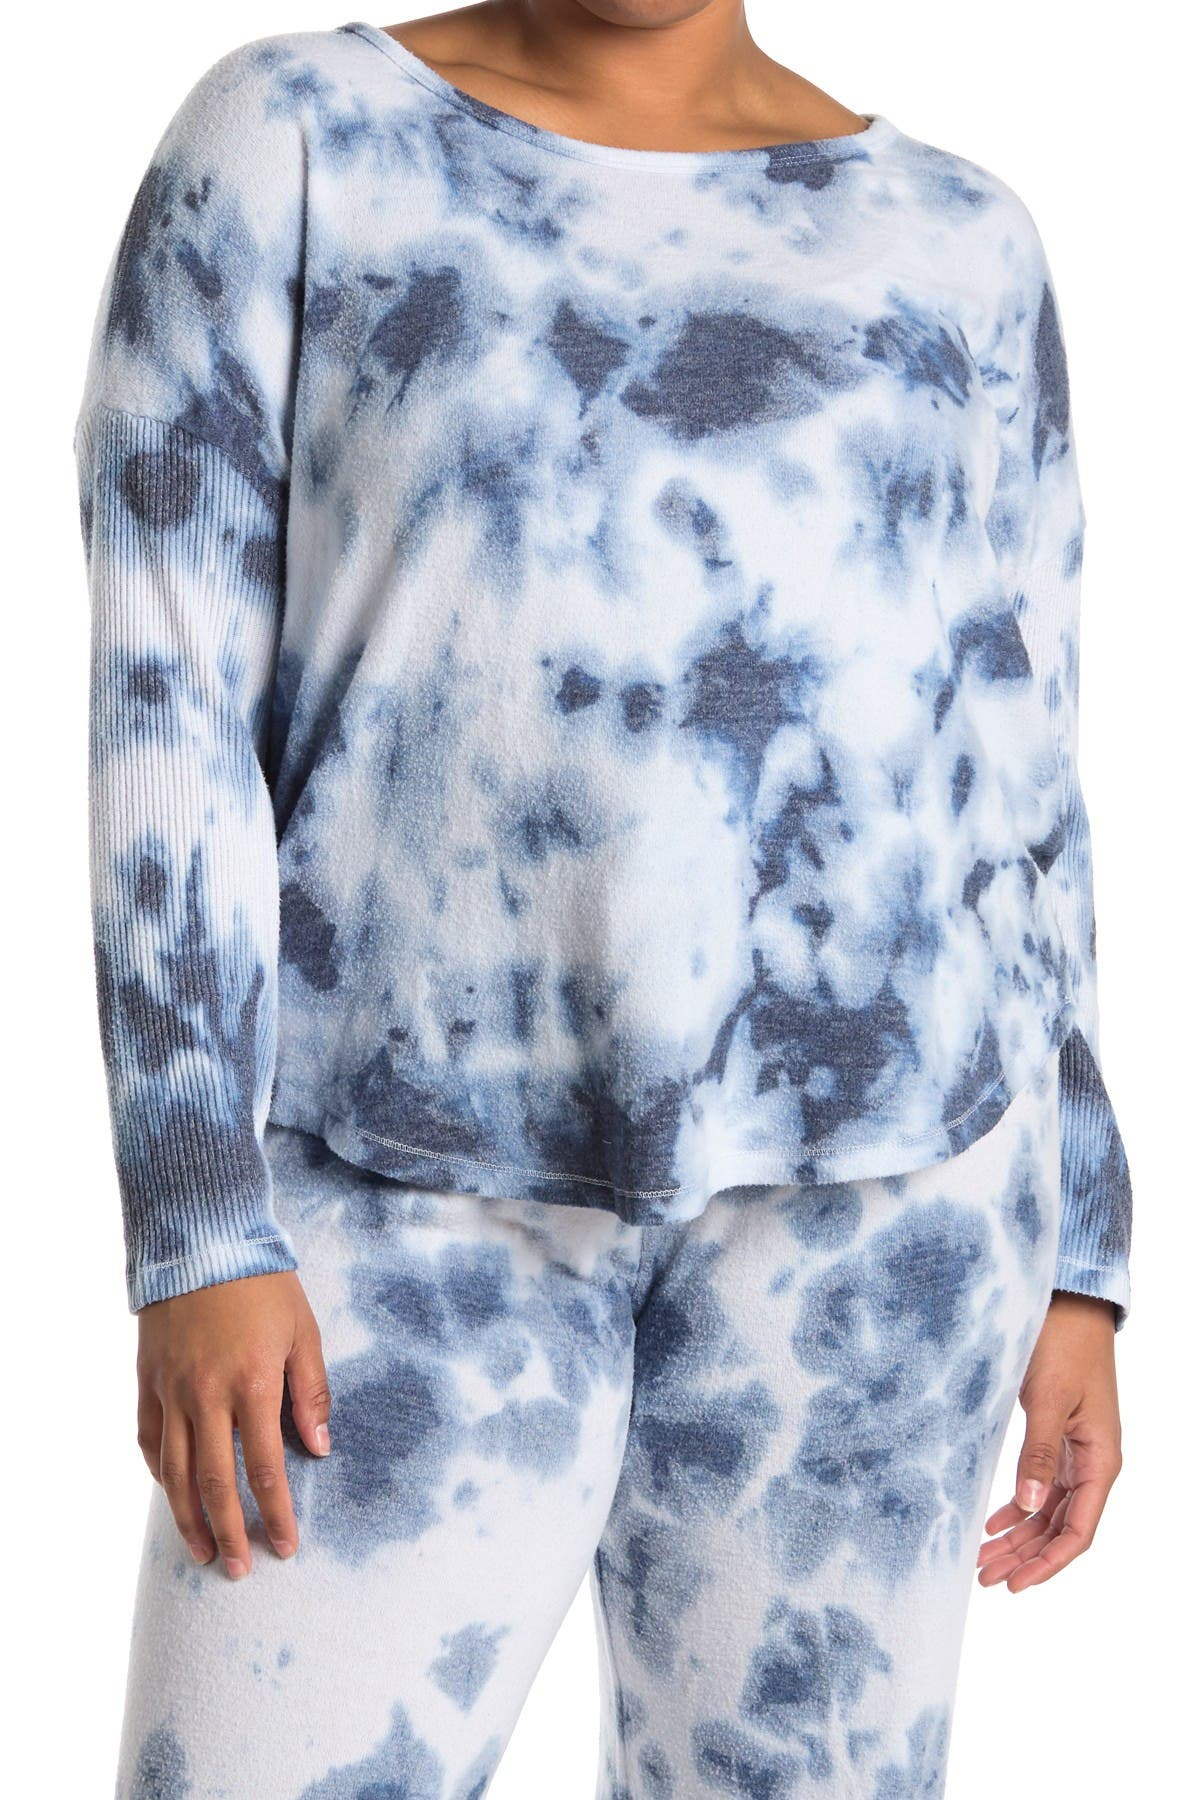 Image of Theo and Spence Tie Dye Print Rib Sleeve Swing Pullover Sweater